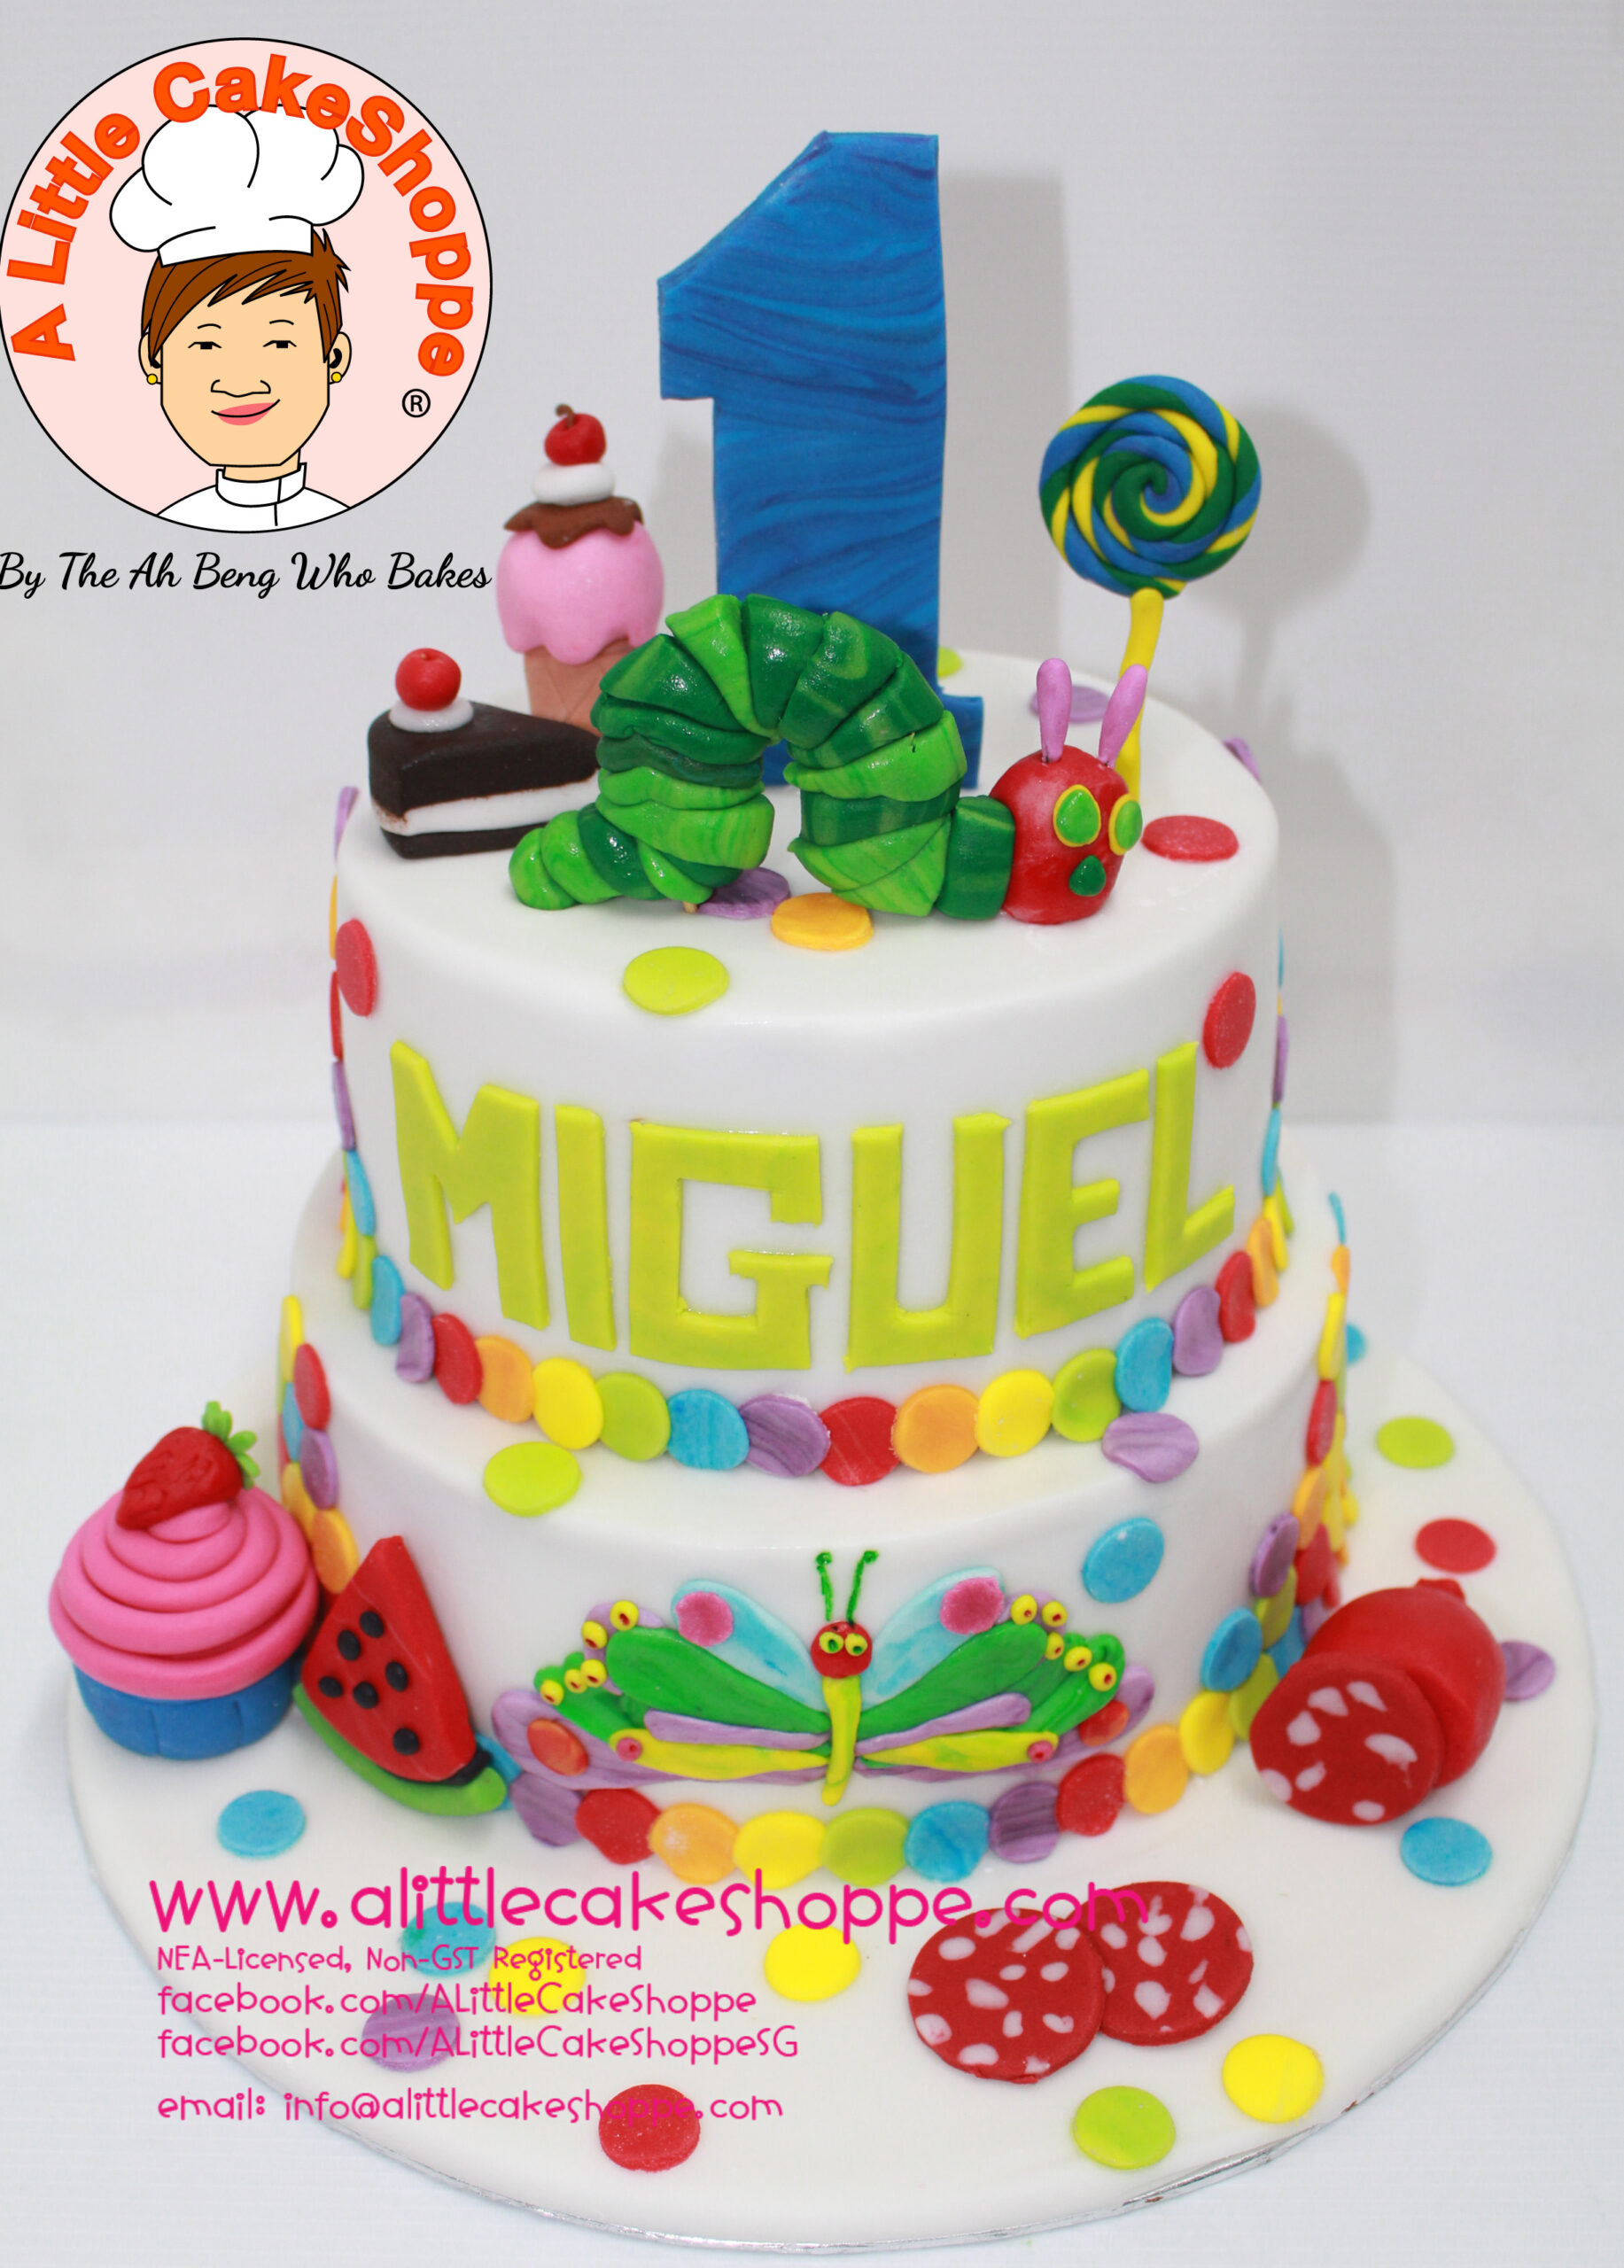 Best Customised Cake Shop Singapore custom cake 2D 3D birthday cake cupcakes desserts wedding corporate events anniversary 1st birthday 21st birthday fondant fresh cream buttercream cakes alittlecakeshoppe a little cake shoppe compliments review singapore bakers SG cake shop cakeshop ah beng who bakes the very hungry caterpillar